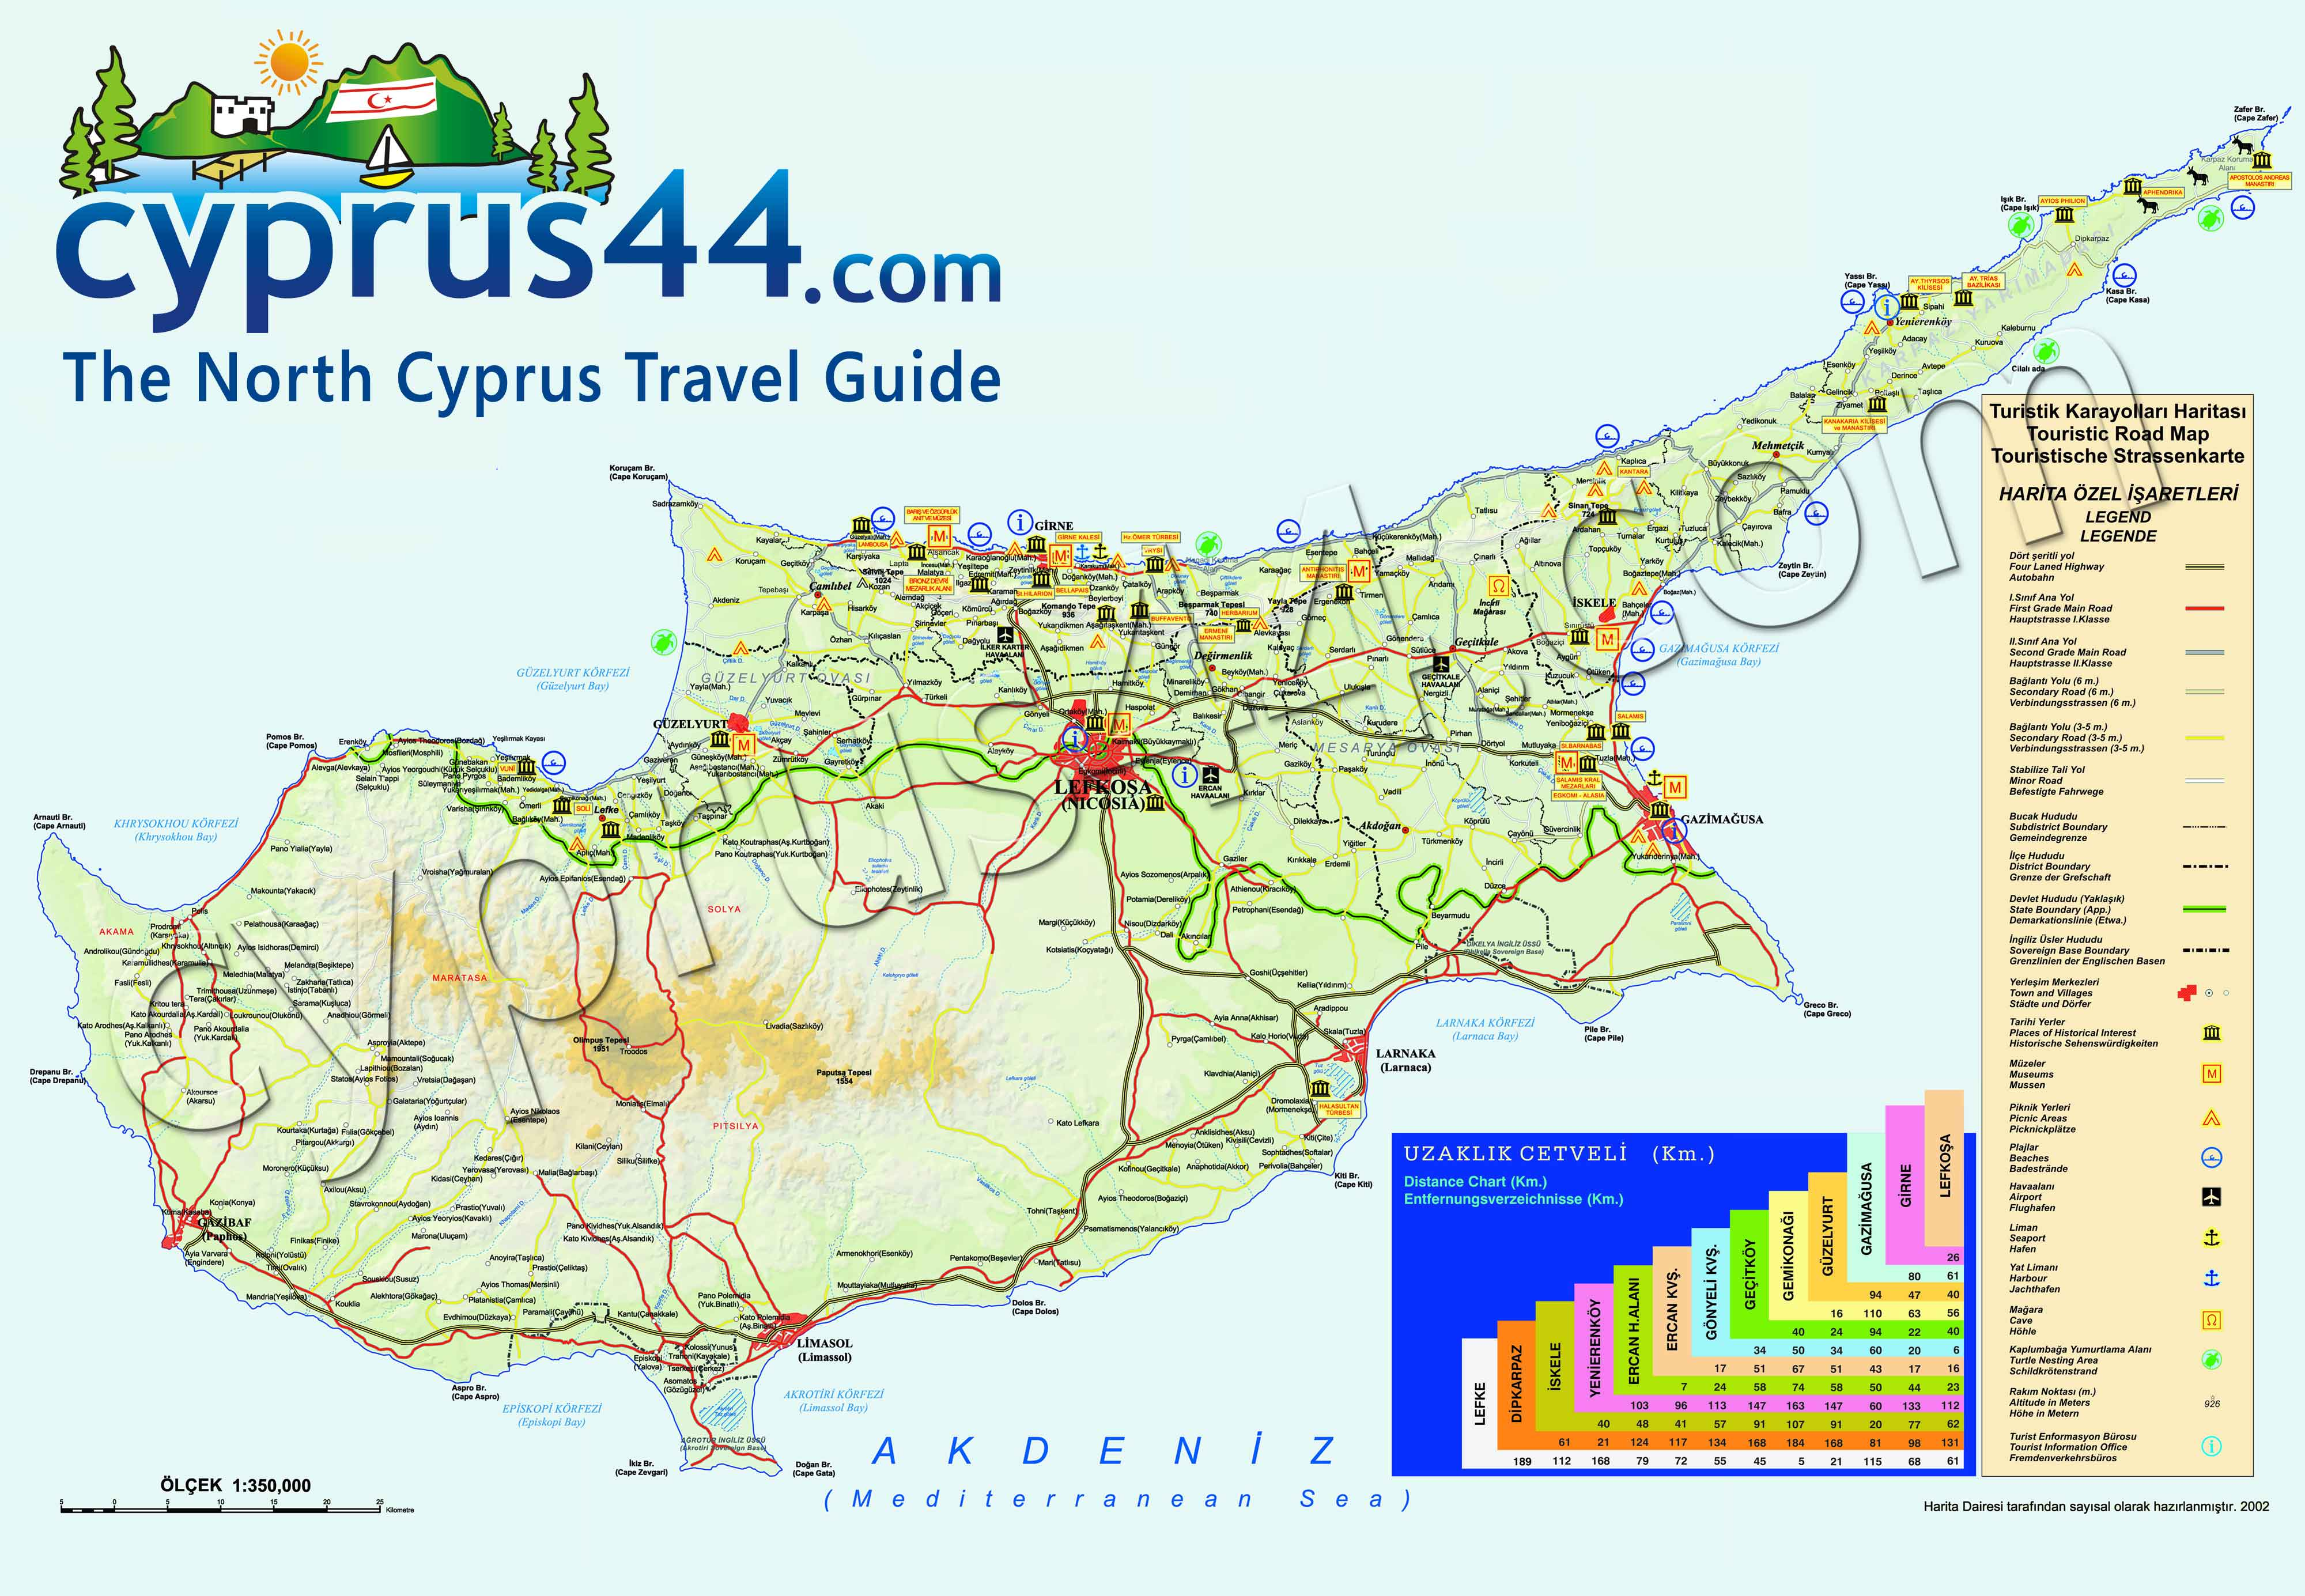 North Cyprus Map - Cyprus44, the north cyprus guide